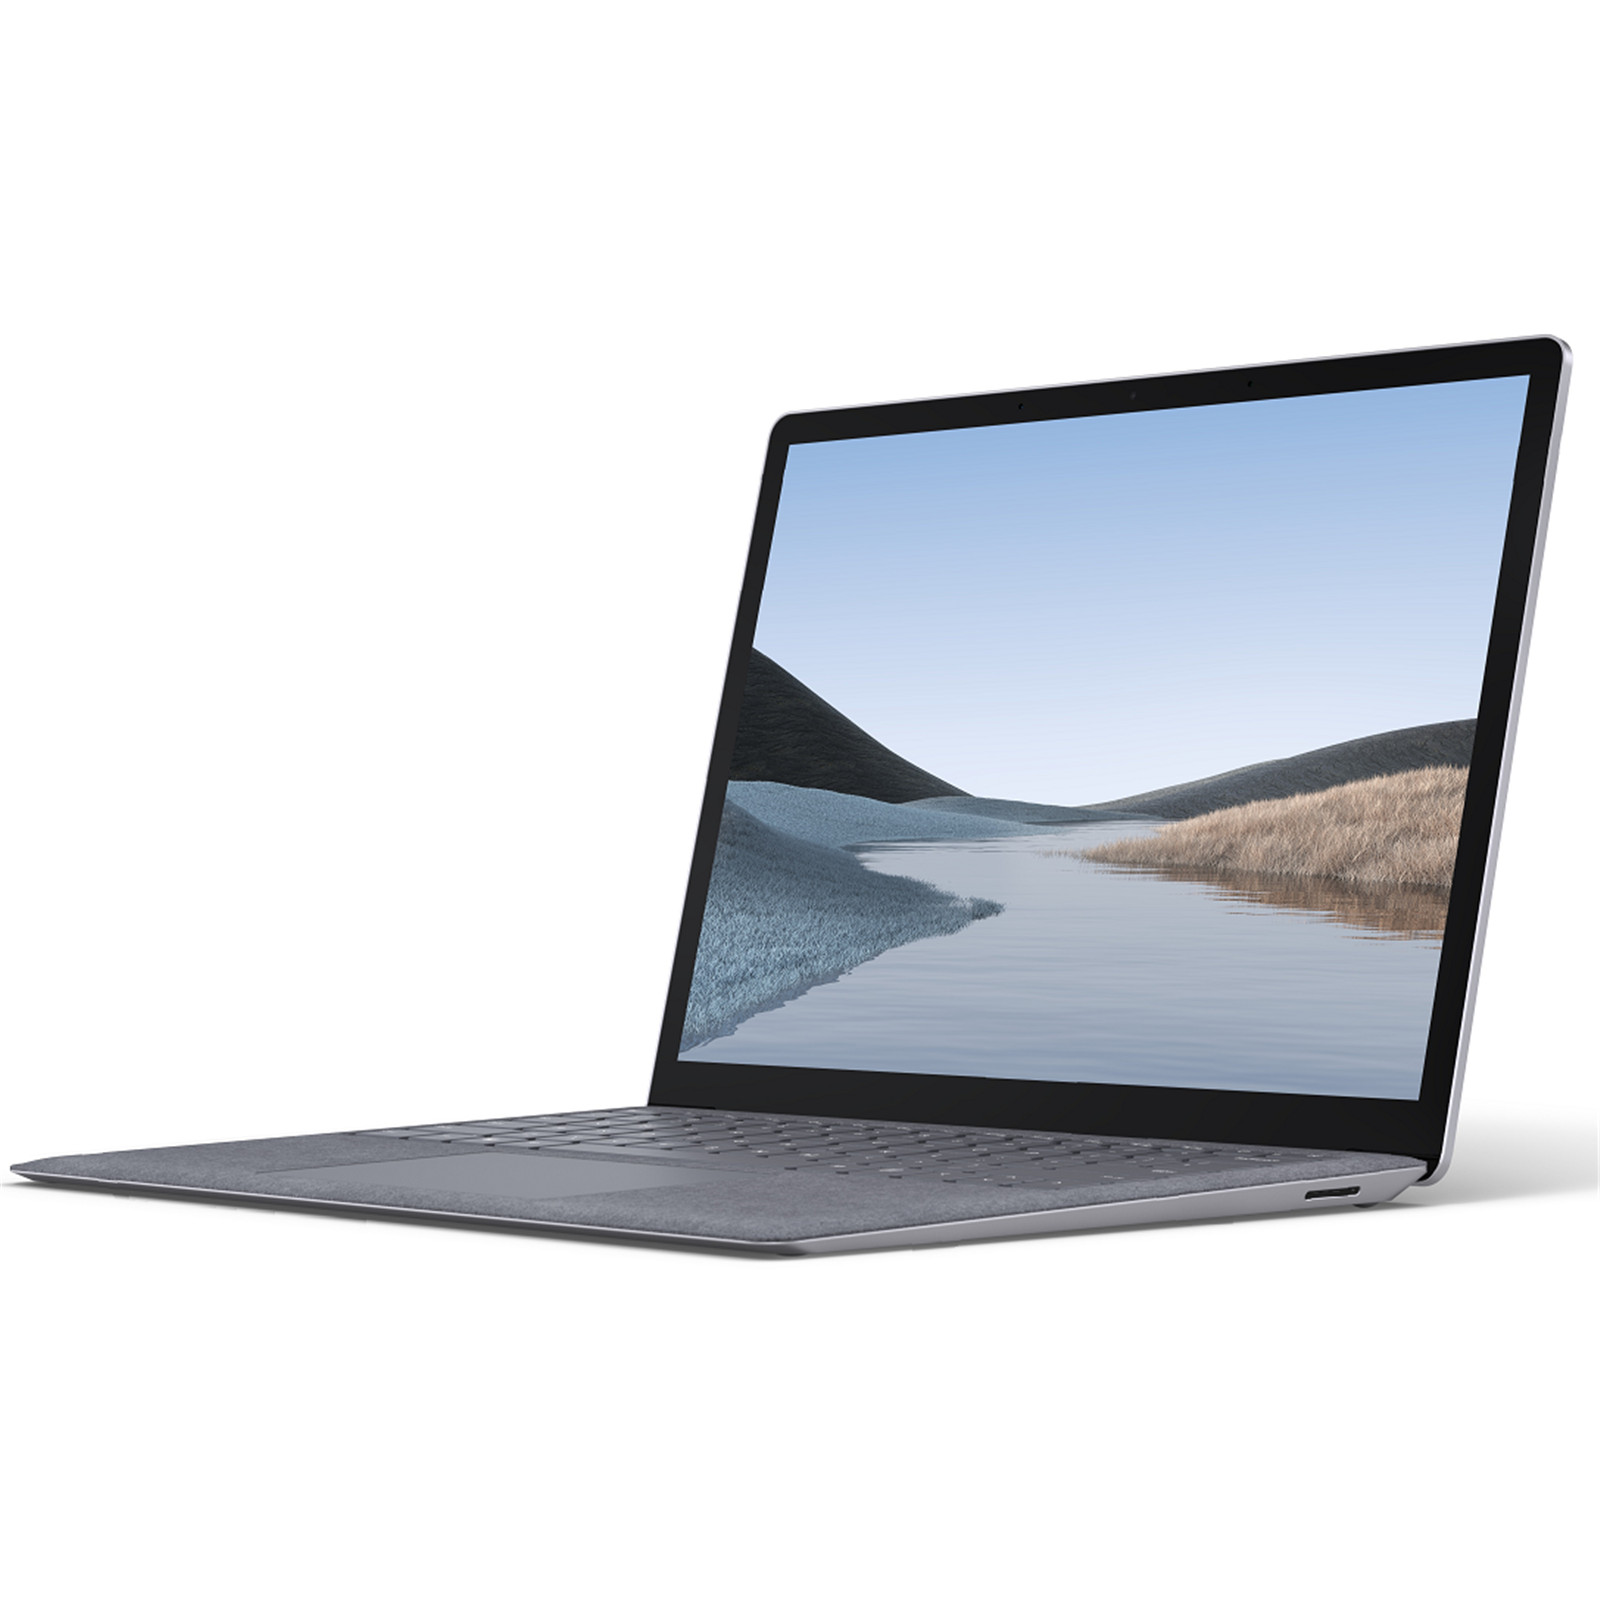 Microsoft Surface Laptop 3 13.5 Inch i5-1035G7 3.70GHz 8GB RAM 128GB SSD Touchscreen Laptop with Windows 10 Pro - Platinum